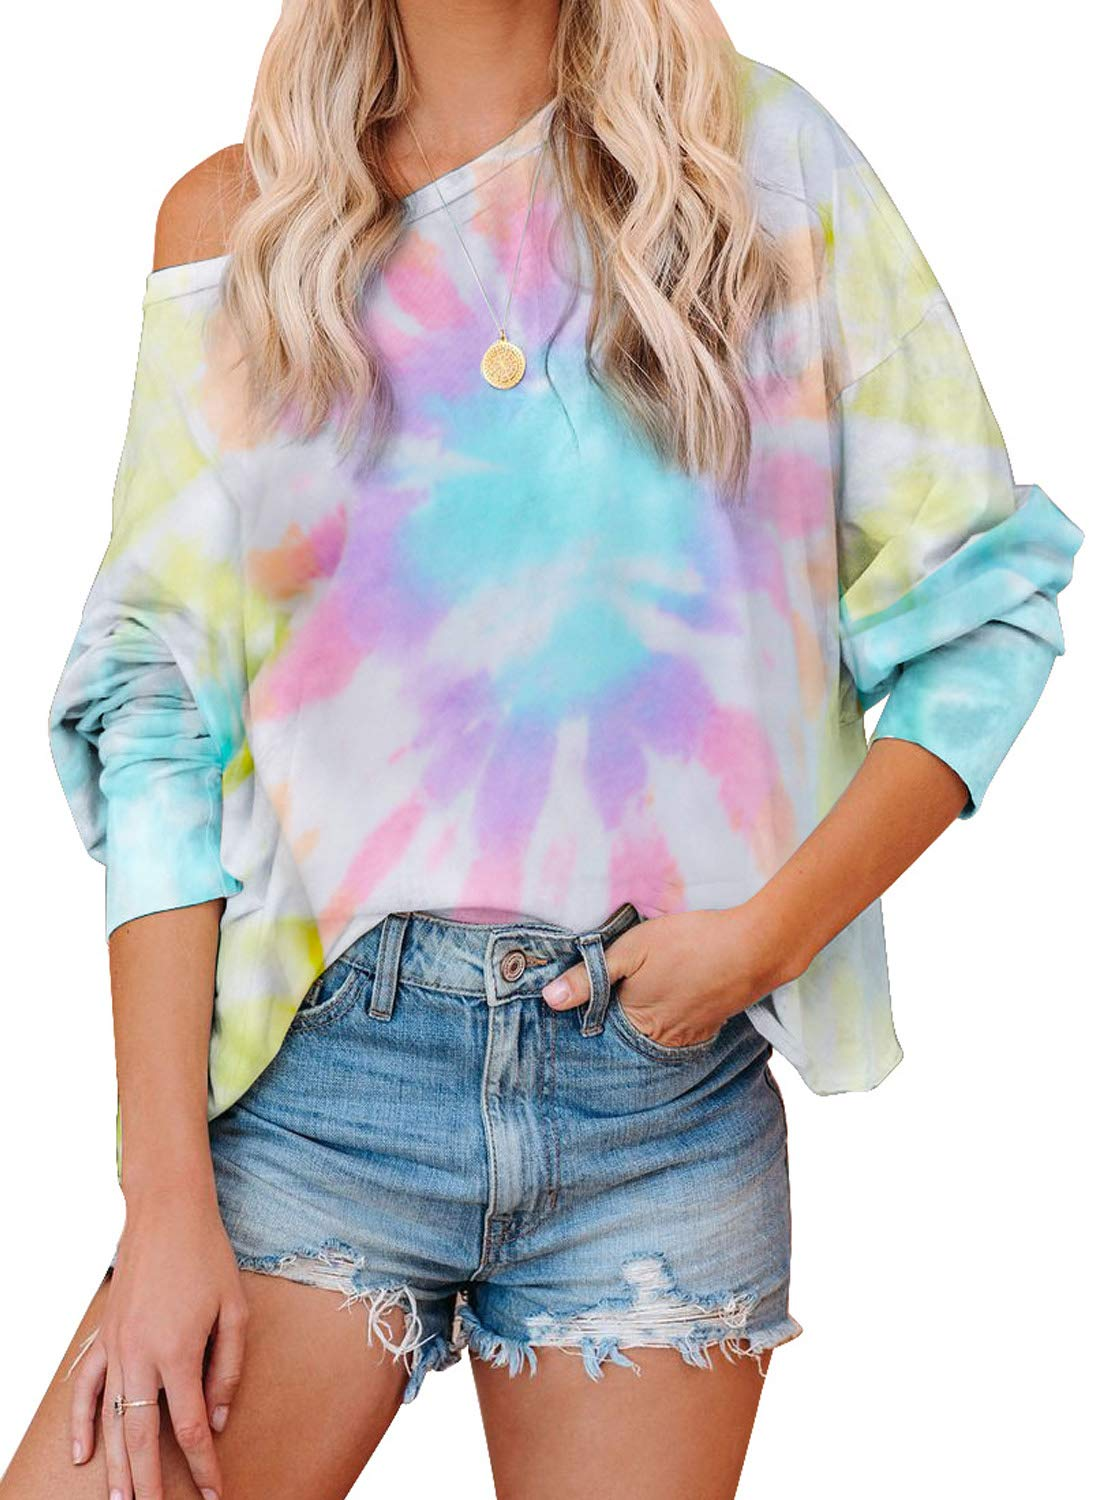 BLENCOT Women's Tie Dye Printed Long Sleeve Sweatshirt Round Neck Casual Loose Pullover Tops Shirts